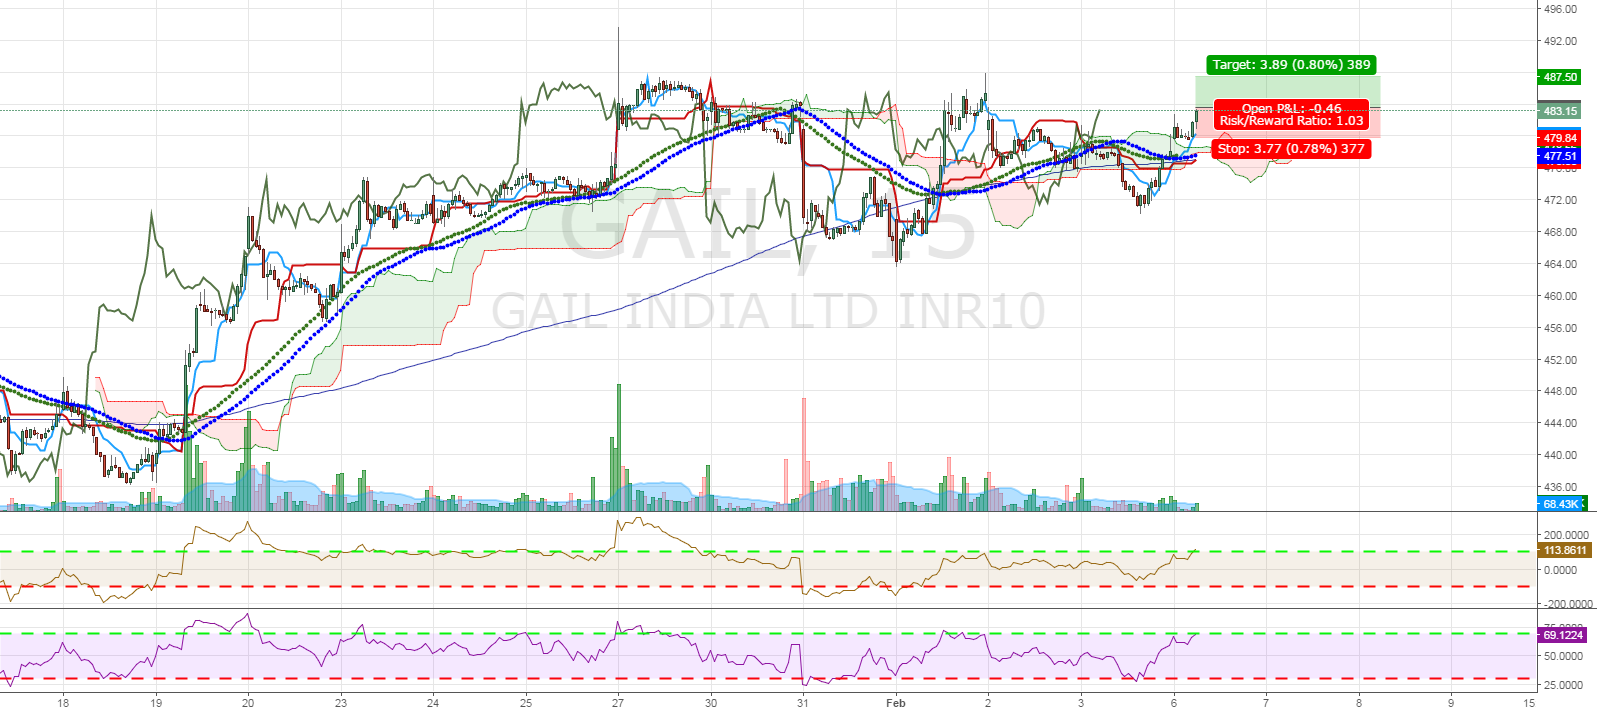 Gail Intraday Breakout